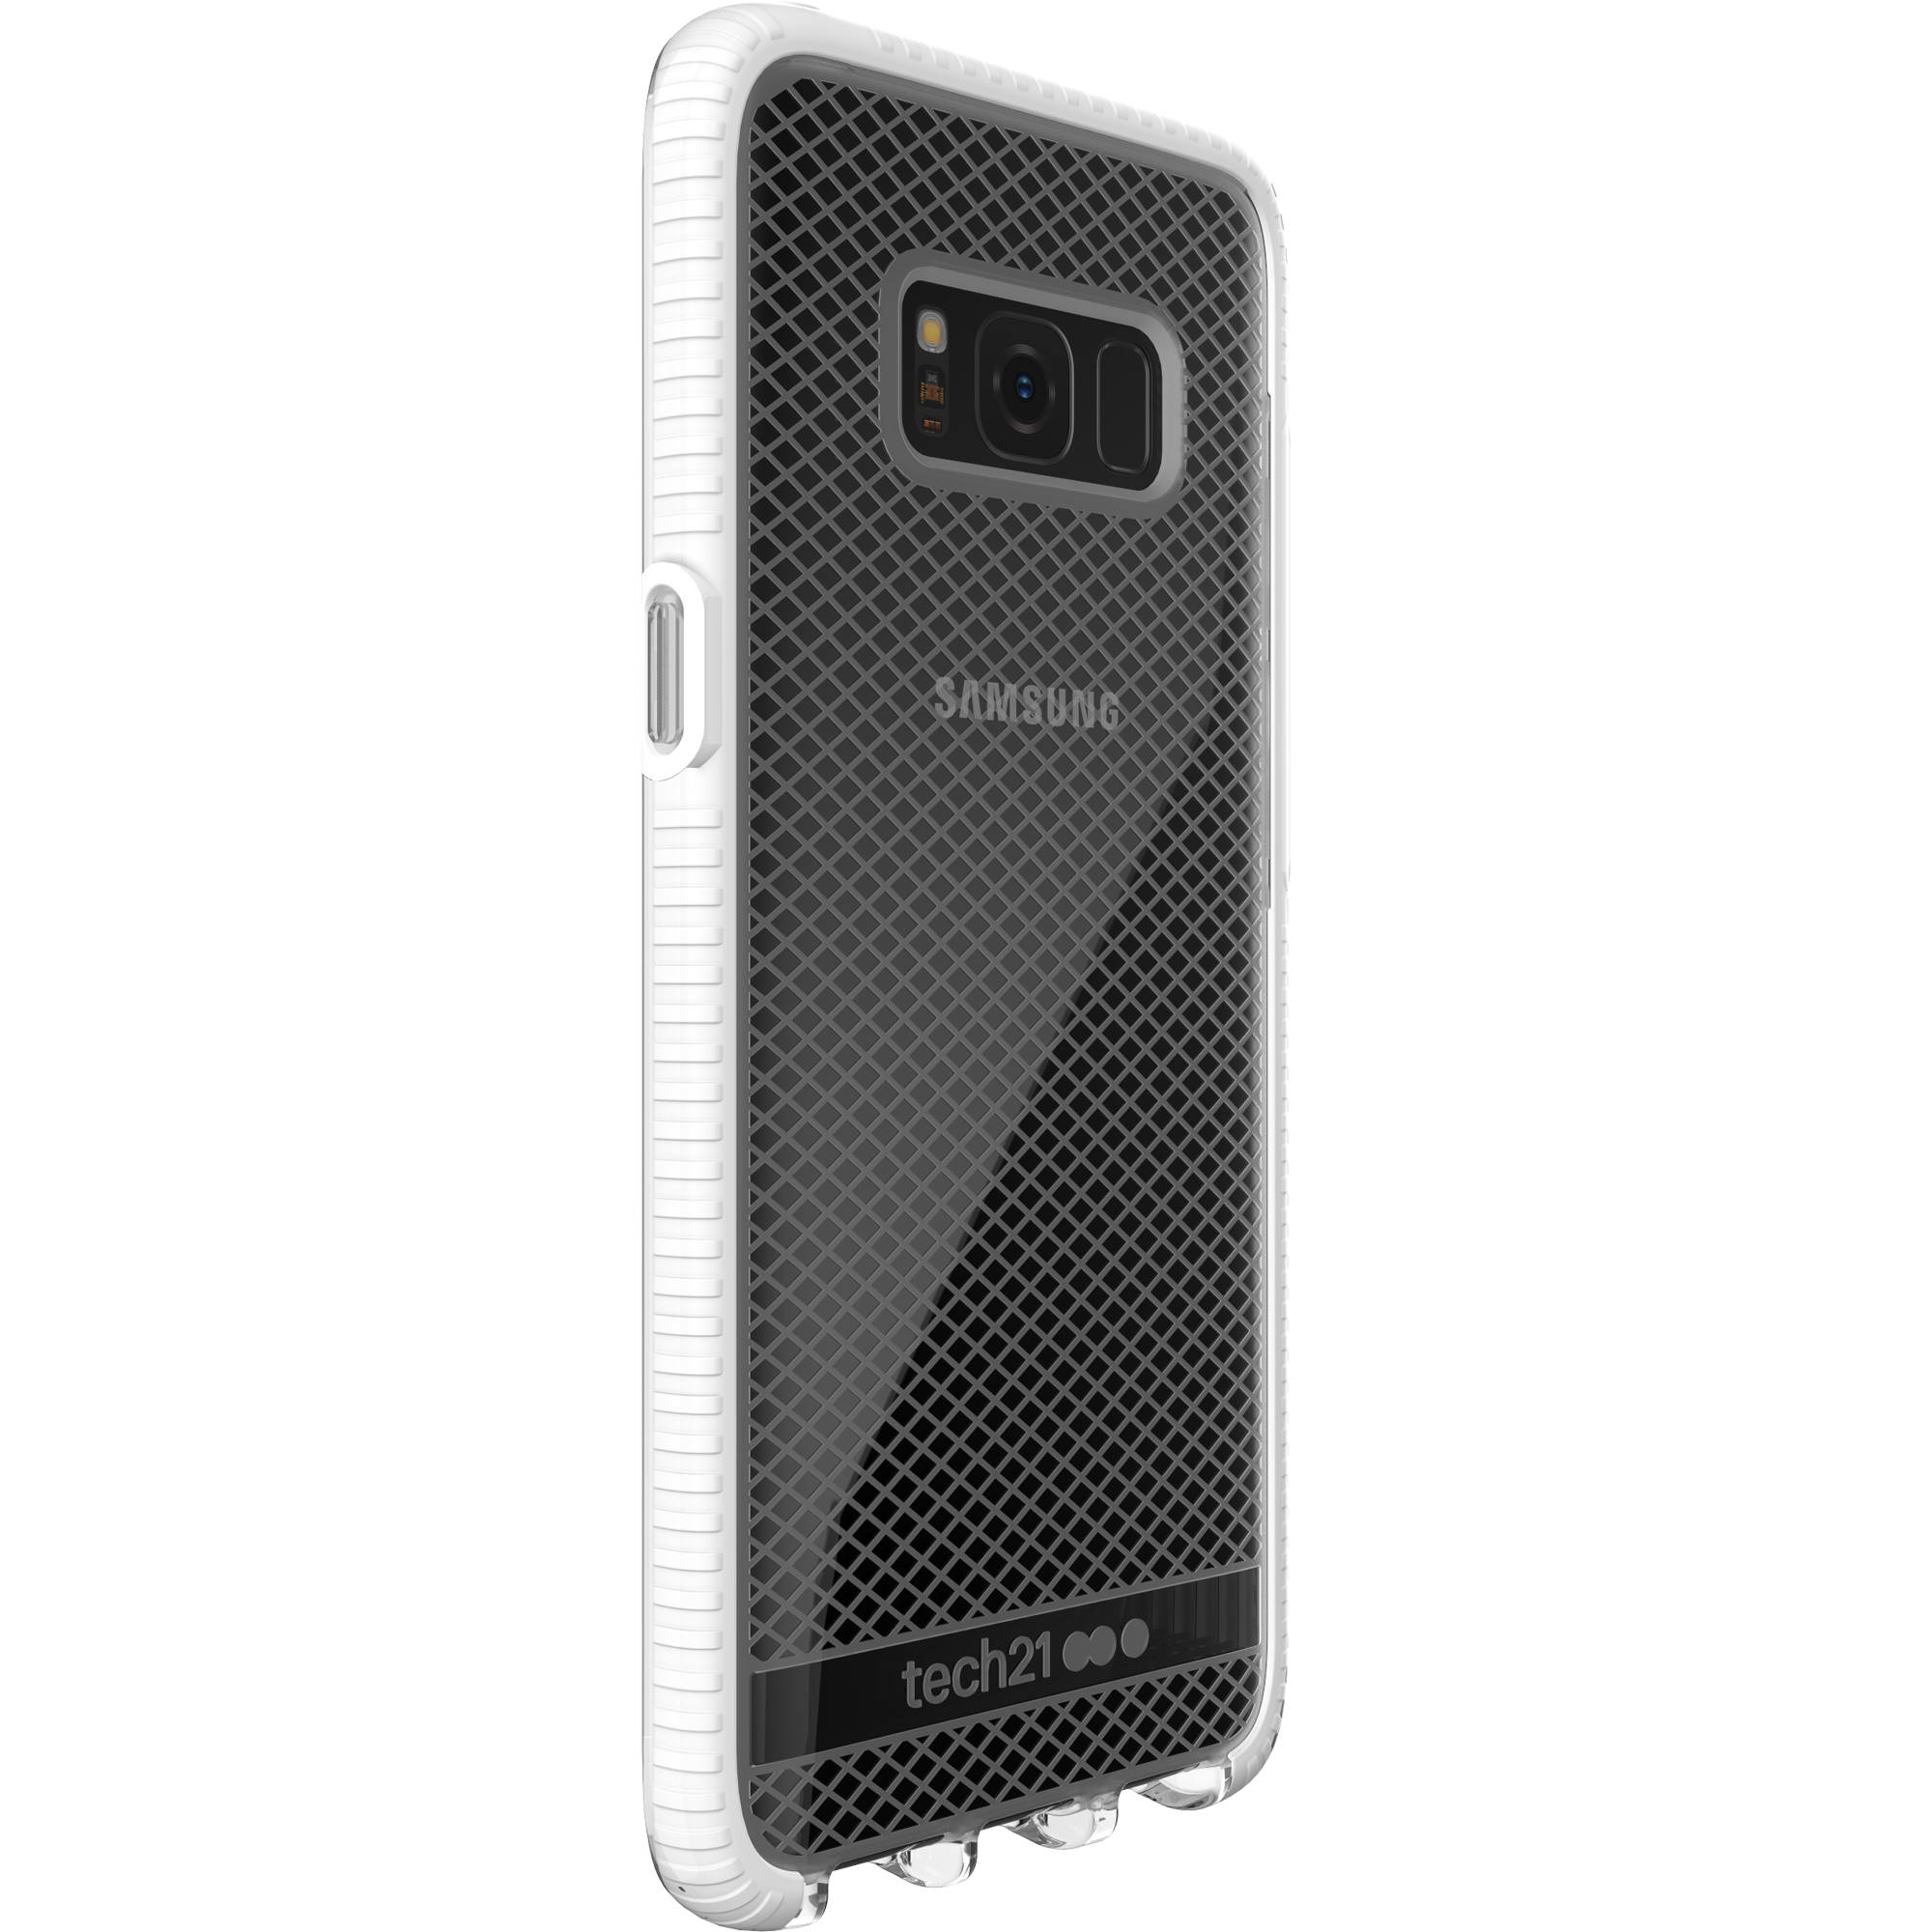 timeless design 4e322 31a43 Tech21 Evo Check Case for Galaxy S8 (Clear/White)